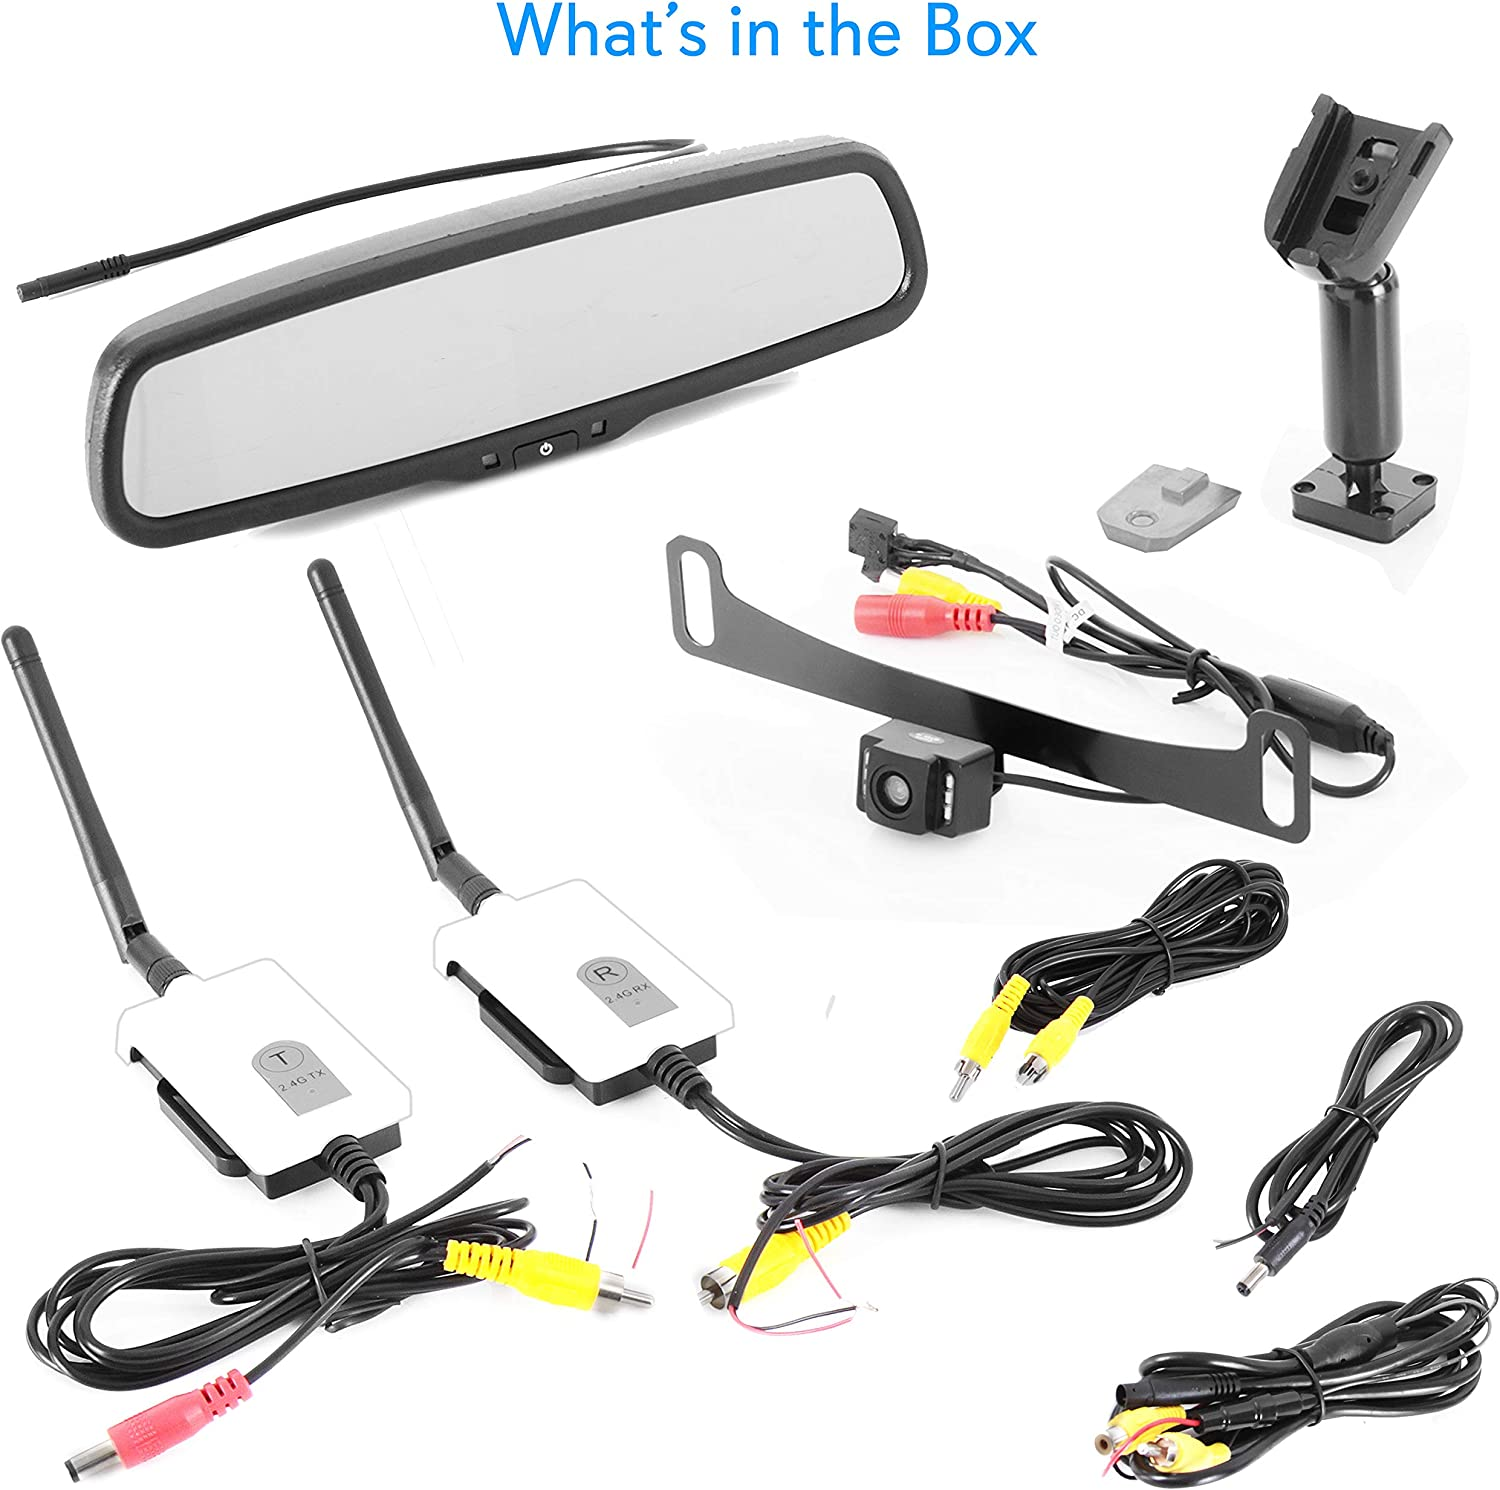 170/° Angle Adjustable OEM Fit Waterproof /& Night Vision Pyle Backup Car Camera Rear View Mirror Screen Monitor System with Parking /& Reverse Safety Distance Scale Lines PLCM4550 4.3 LCD Display-